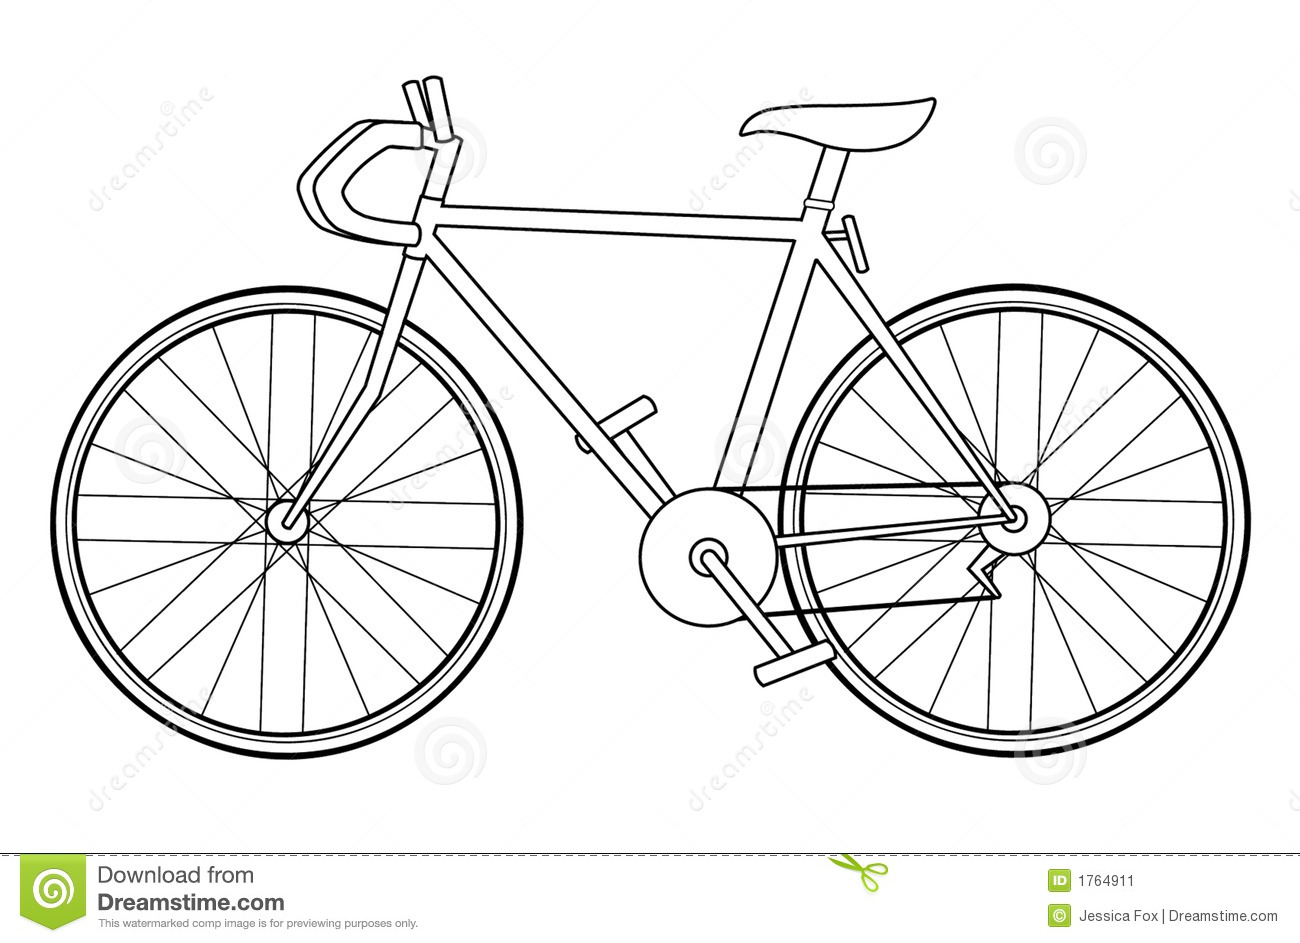 Simple bicycle illustration - photo#4